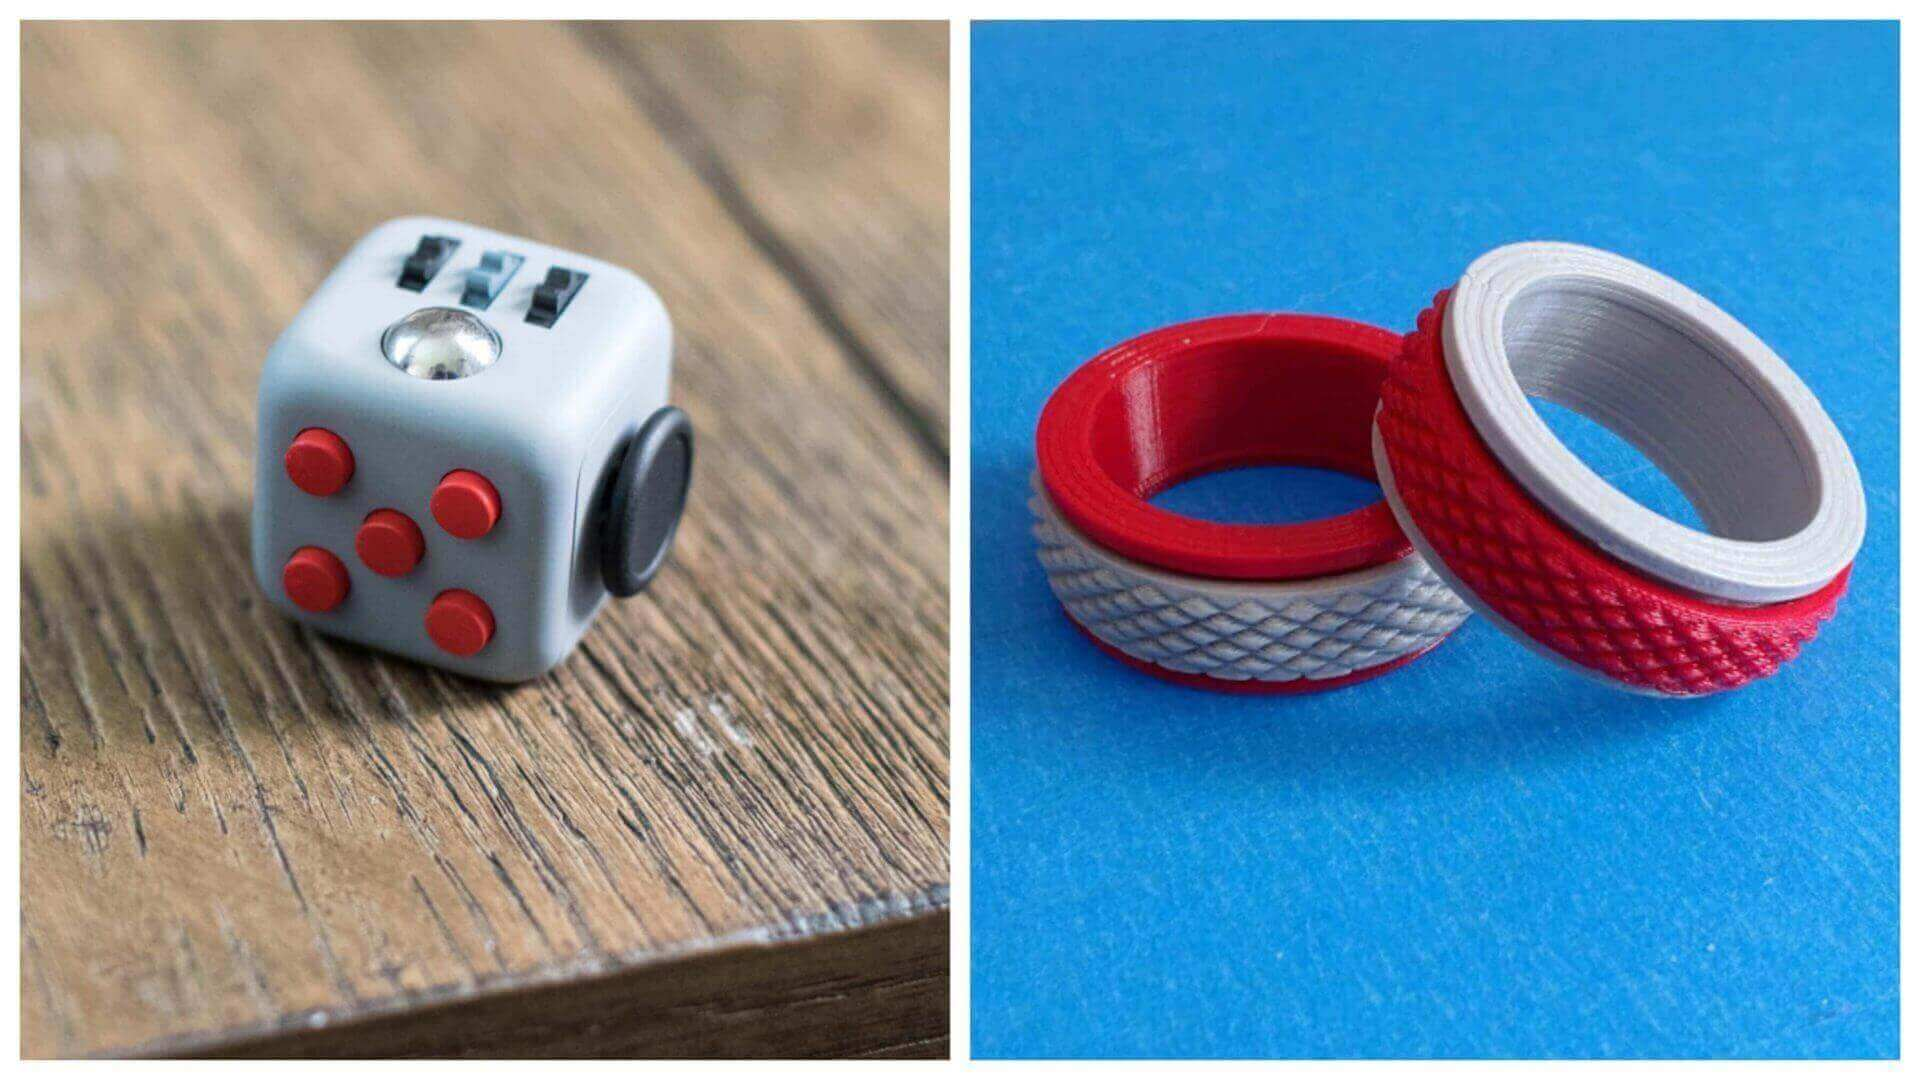 32 Great DIY Fidget Toys & Fidget Spinner Alternatives | All3DP